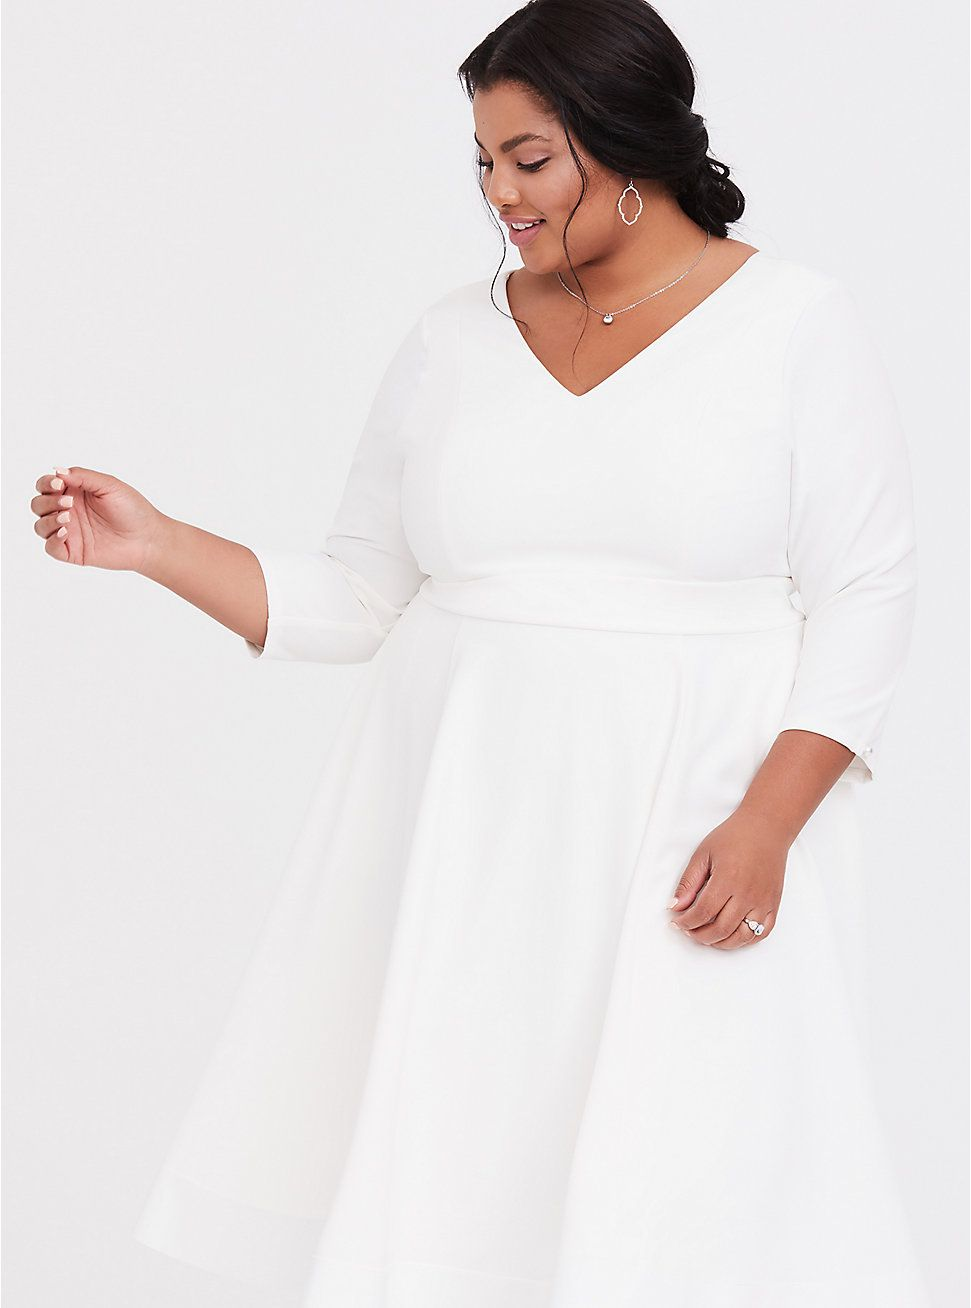 Special Occasion Ivory Fit Flare Dress In 2020 Dresses Flare Dress Fit Flare Dress [ 1308 x 971 Pixel ]